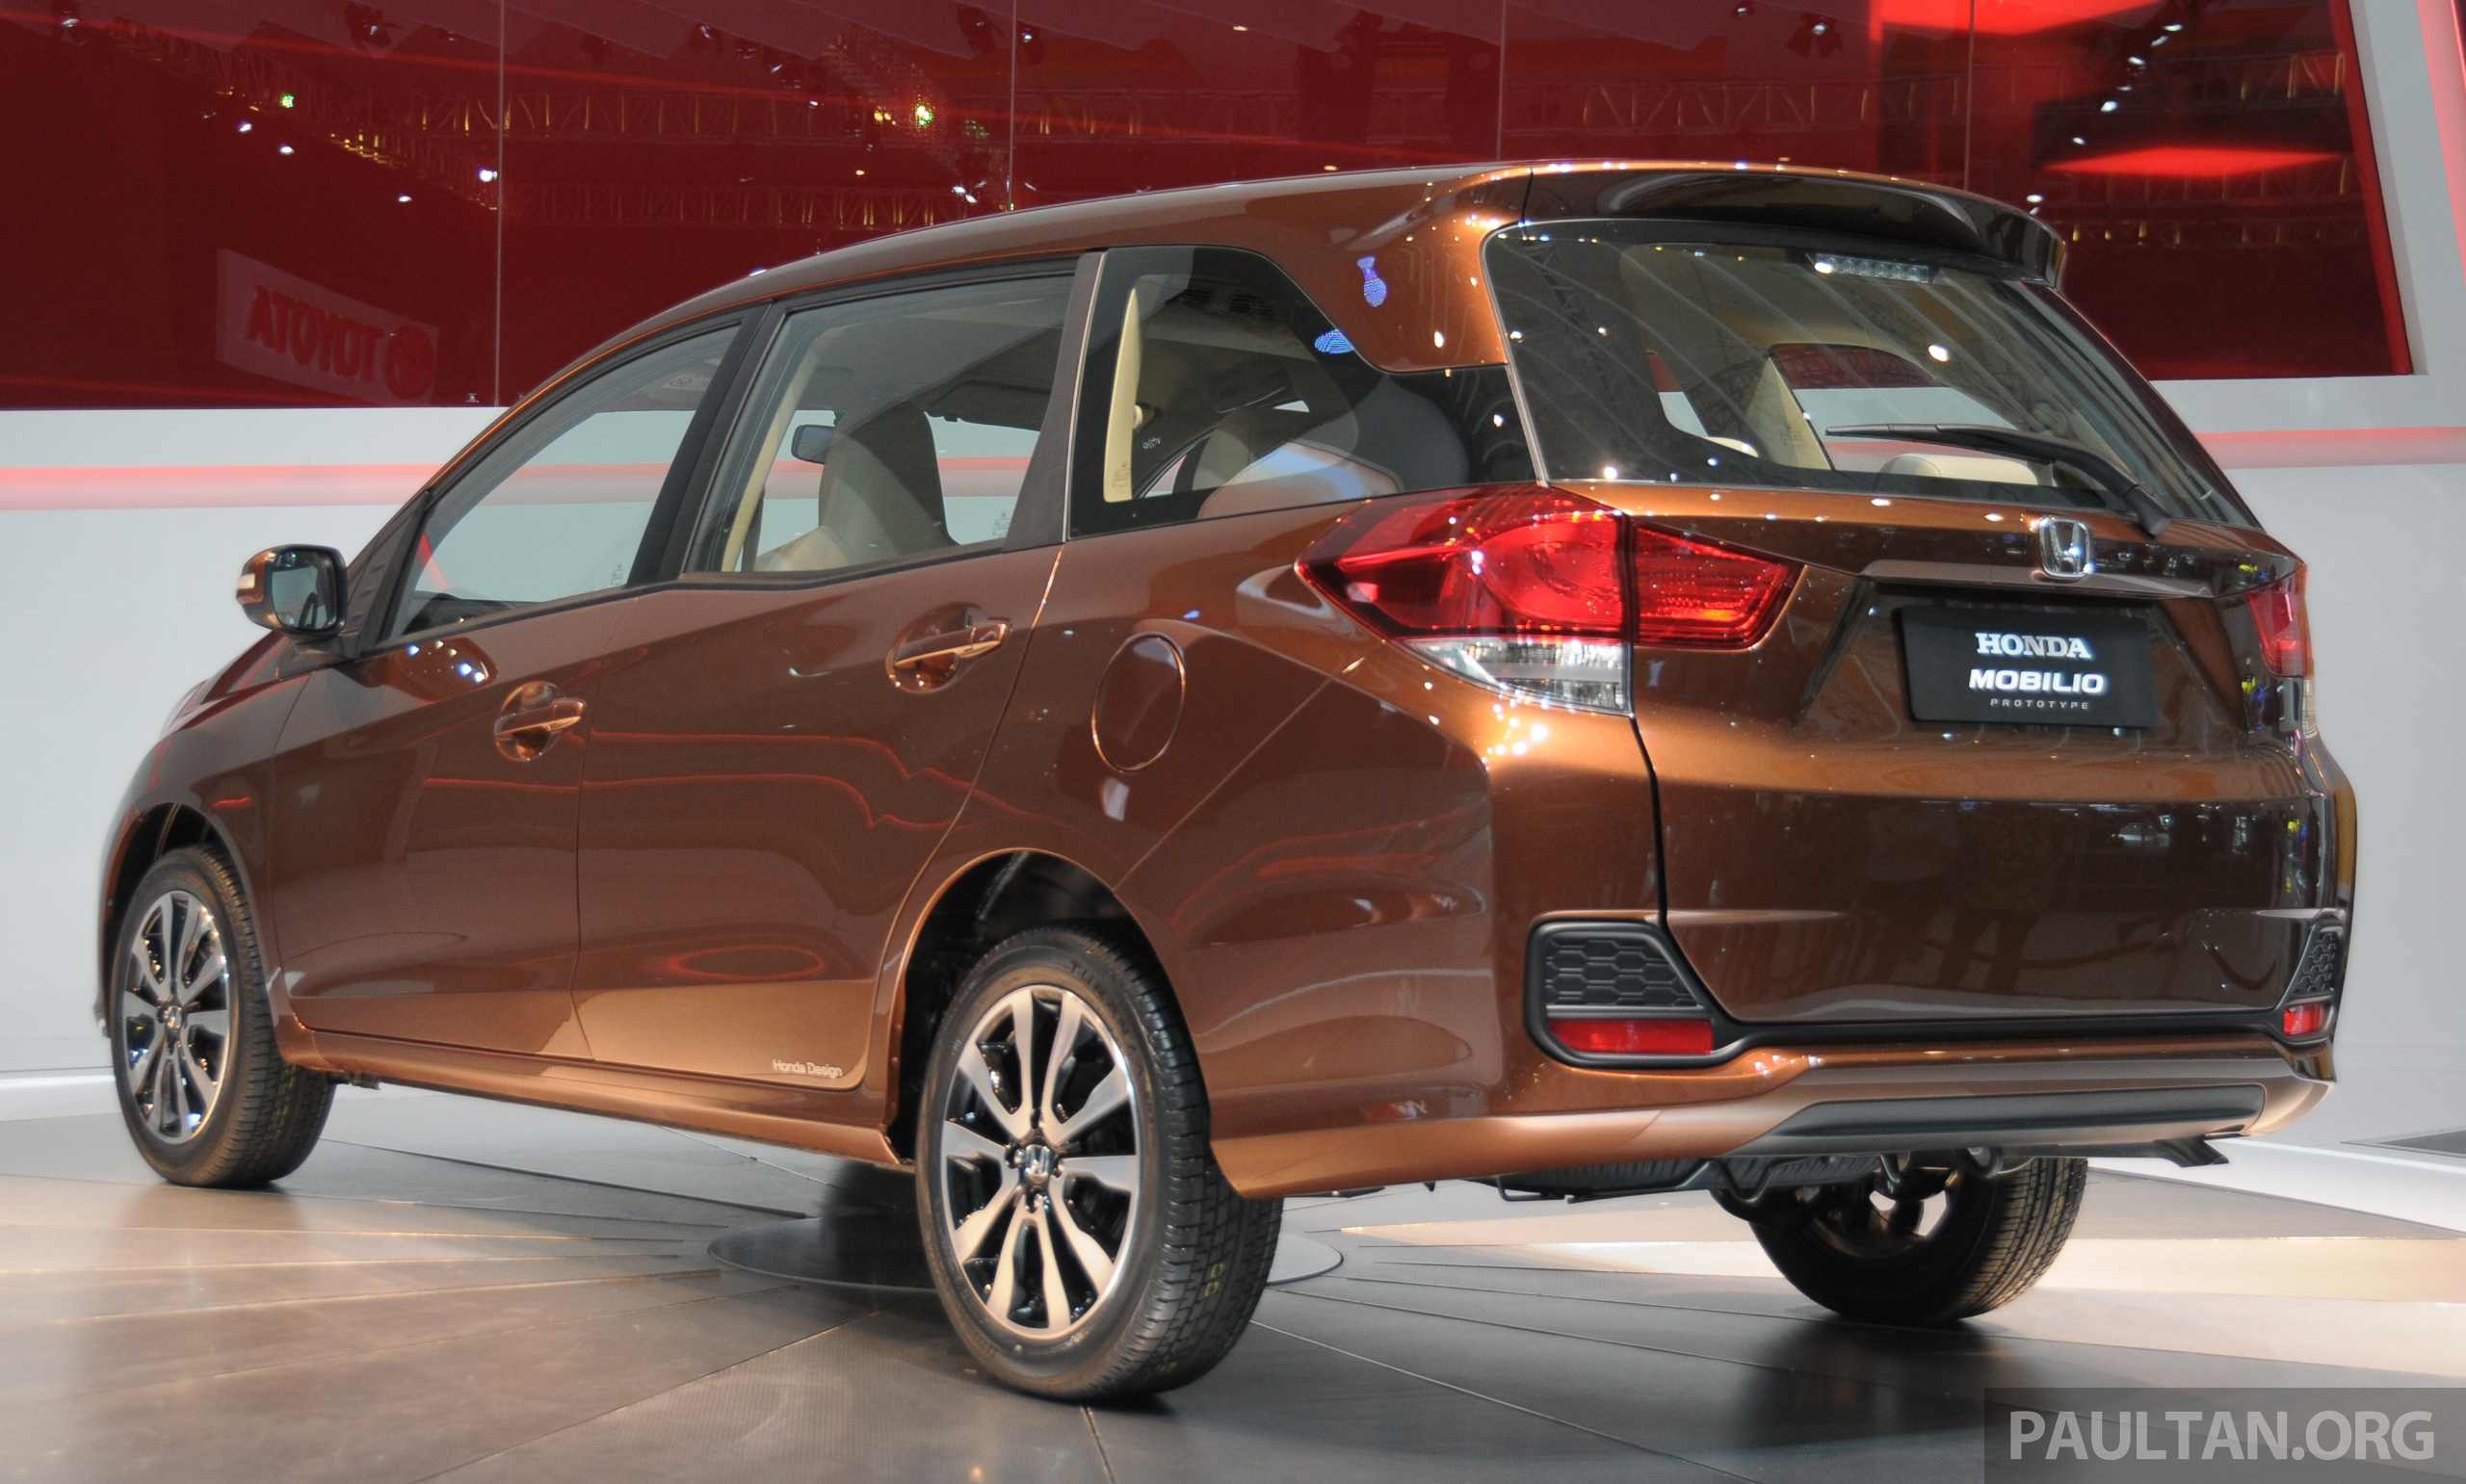 Honda Mobilio Technical Specifications And Fuel Economy